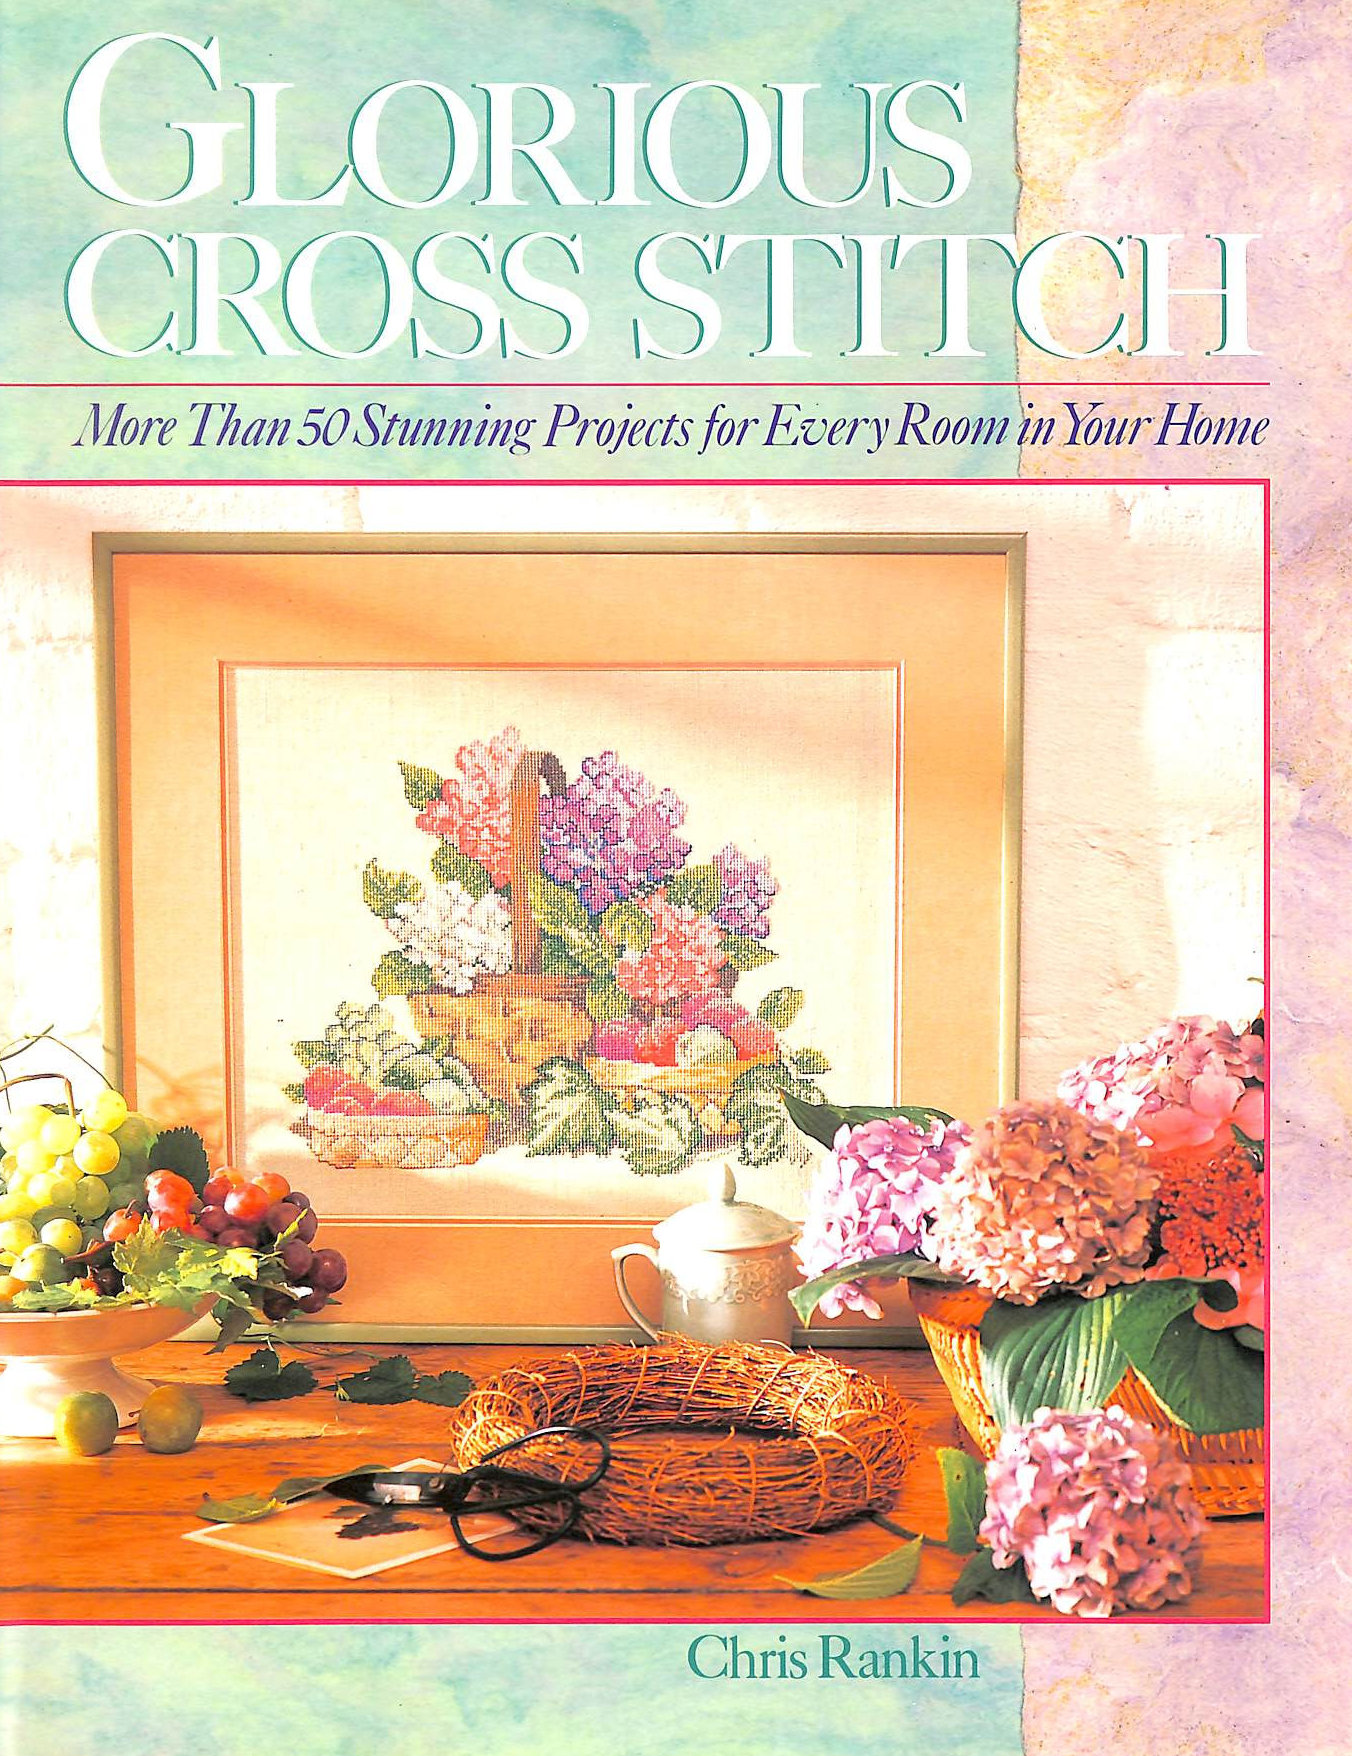 Image for Glorious Cross Stitch: More Than 50 Stunning Projects for Every Room in Your Home (A Sterling / Lark book.)